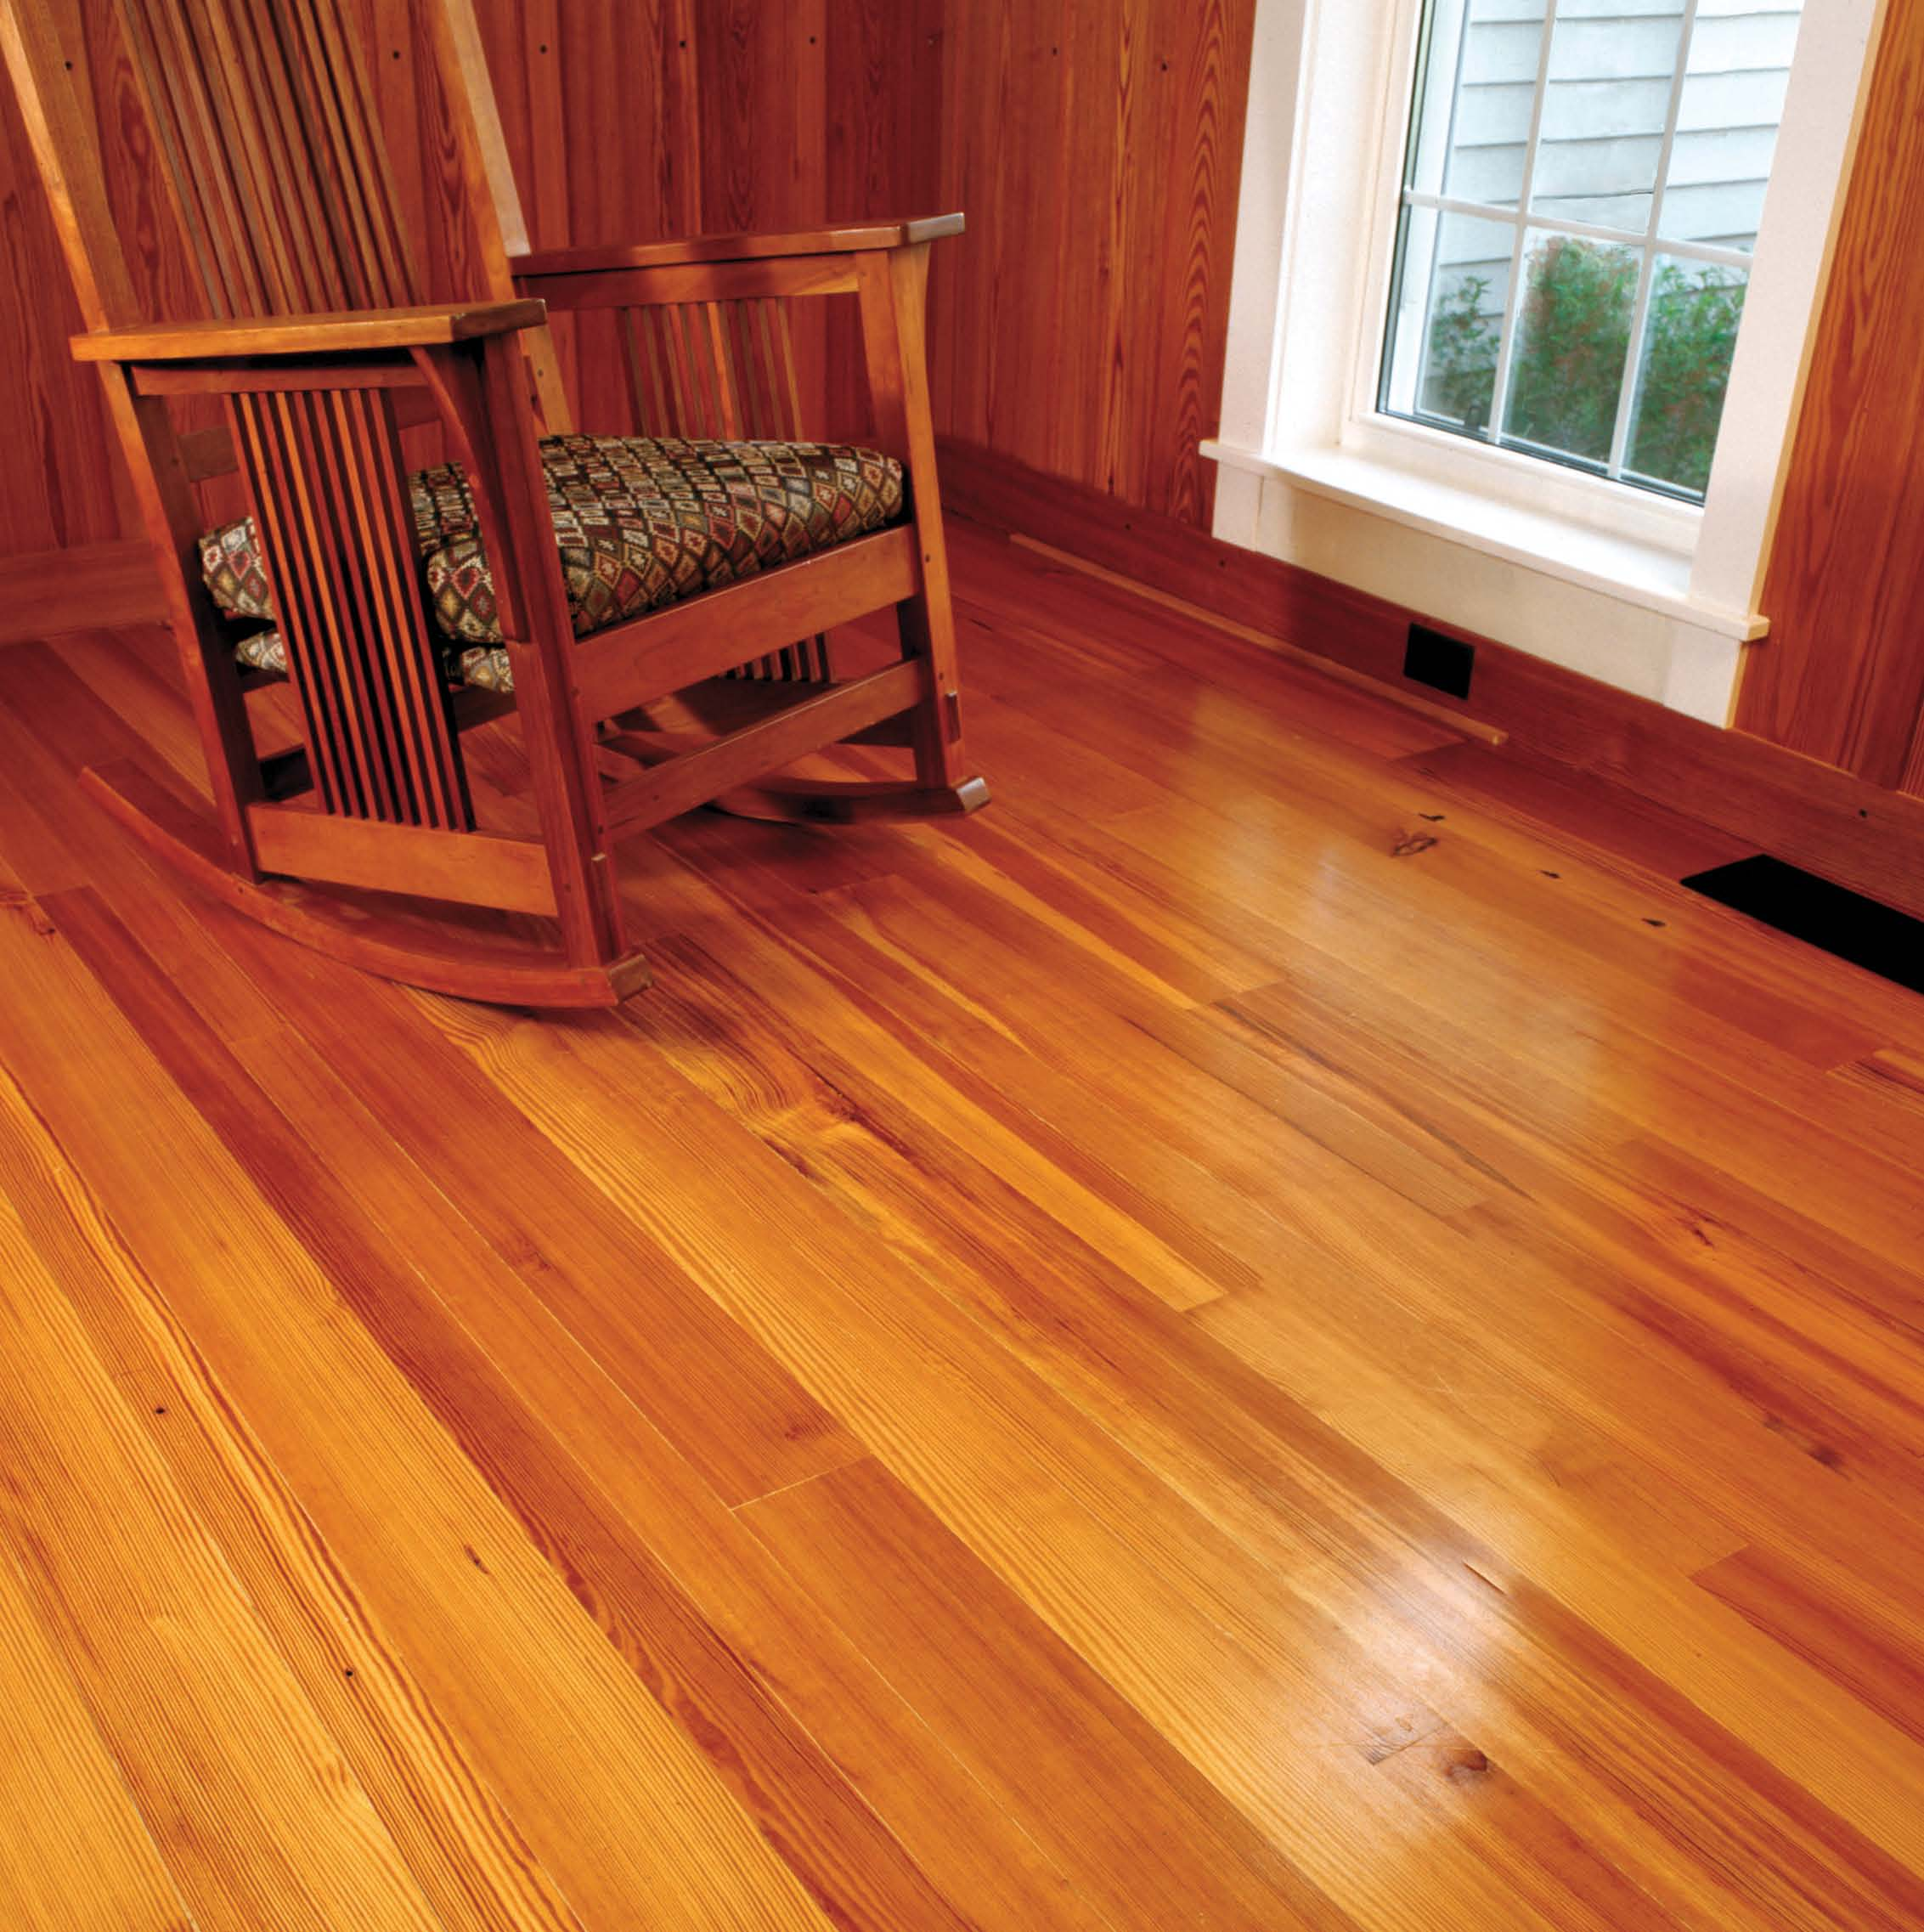 Pioneer Millworks Reclaims Timbers From The United States Leather Company In Nj Old Growth Heart Pine